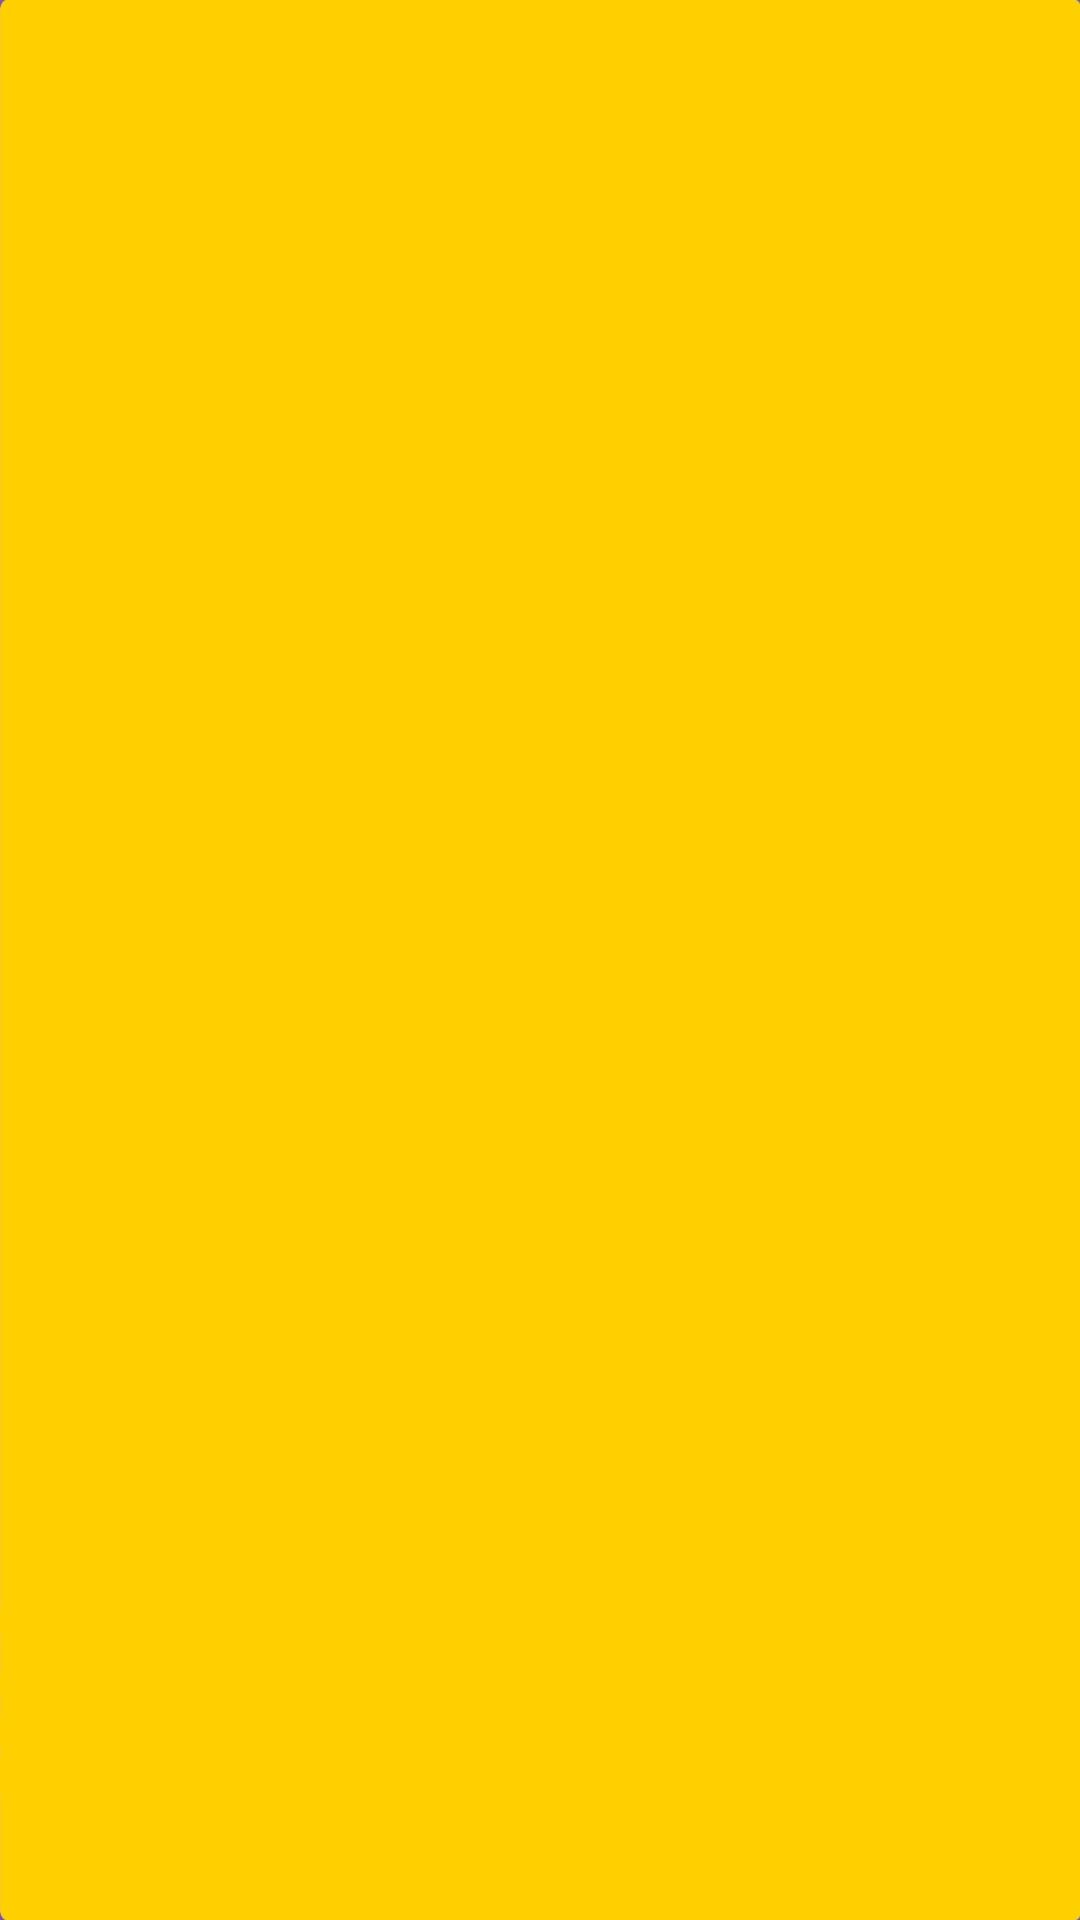 Solid Plain Yellow Wallpaper iPhone